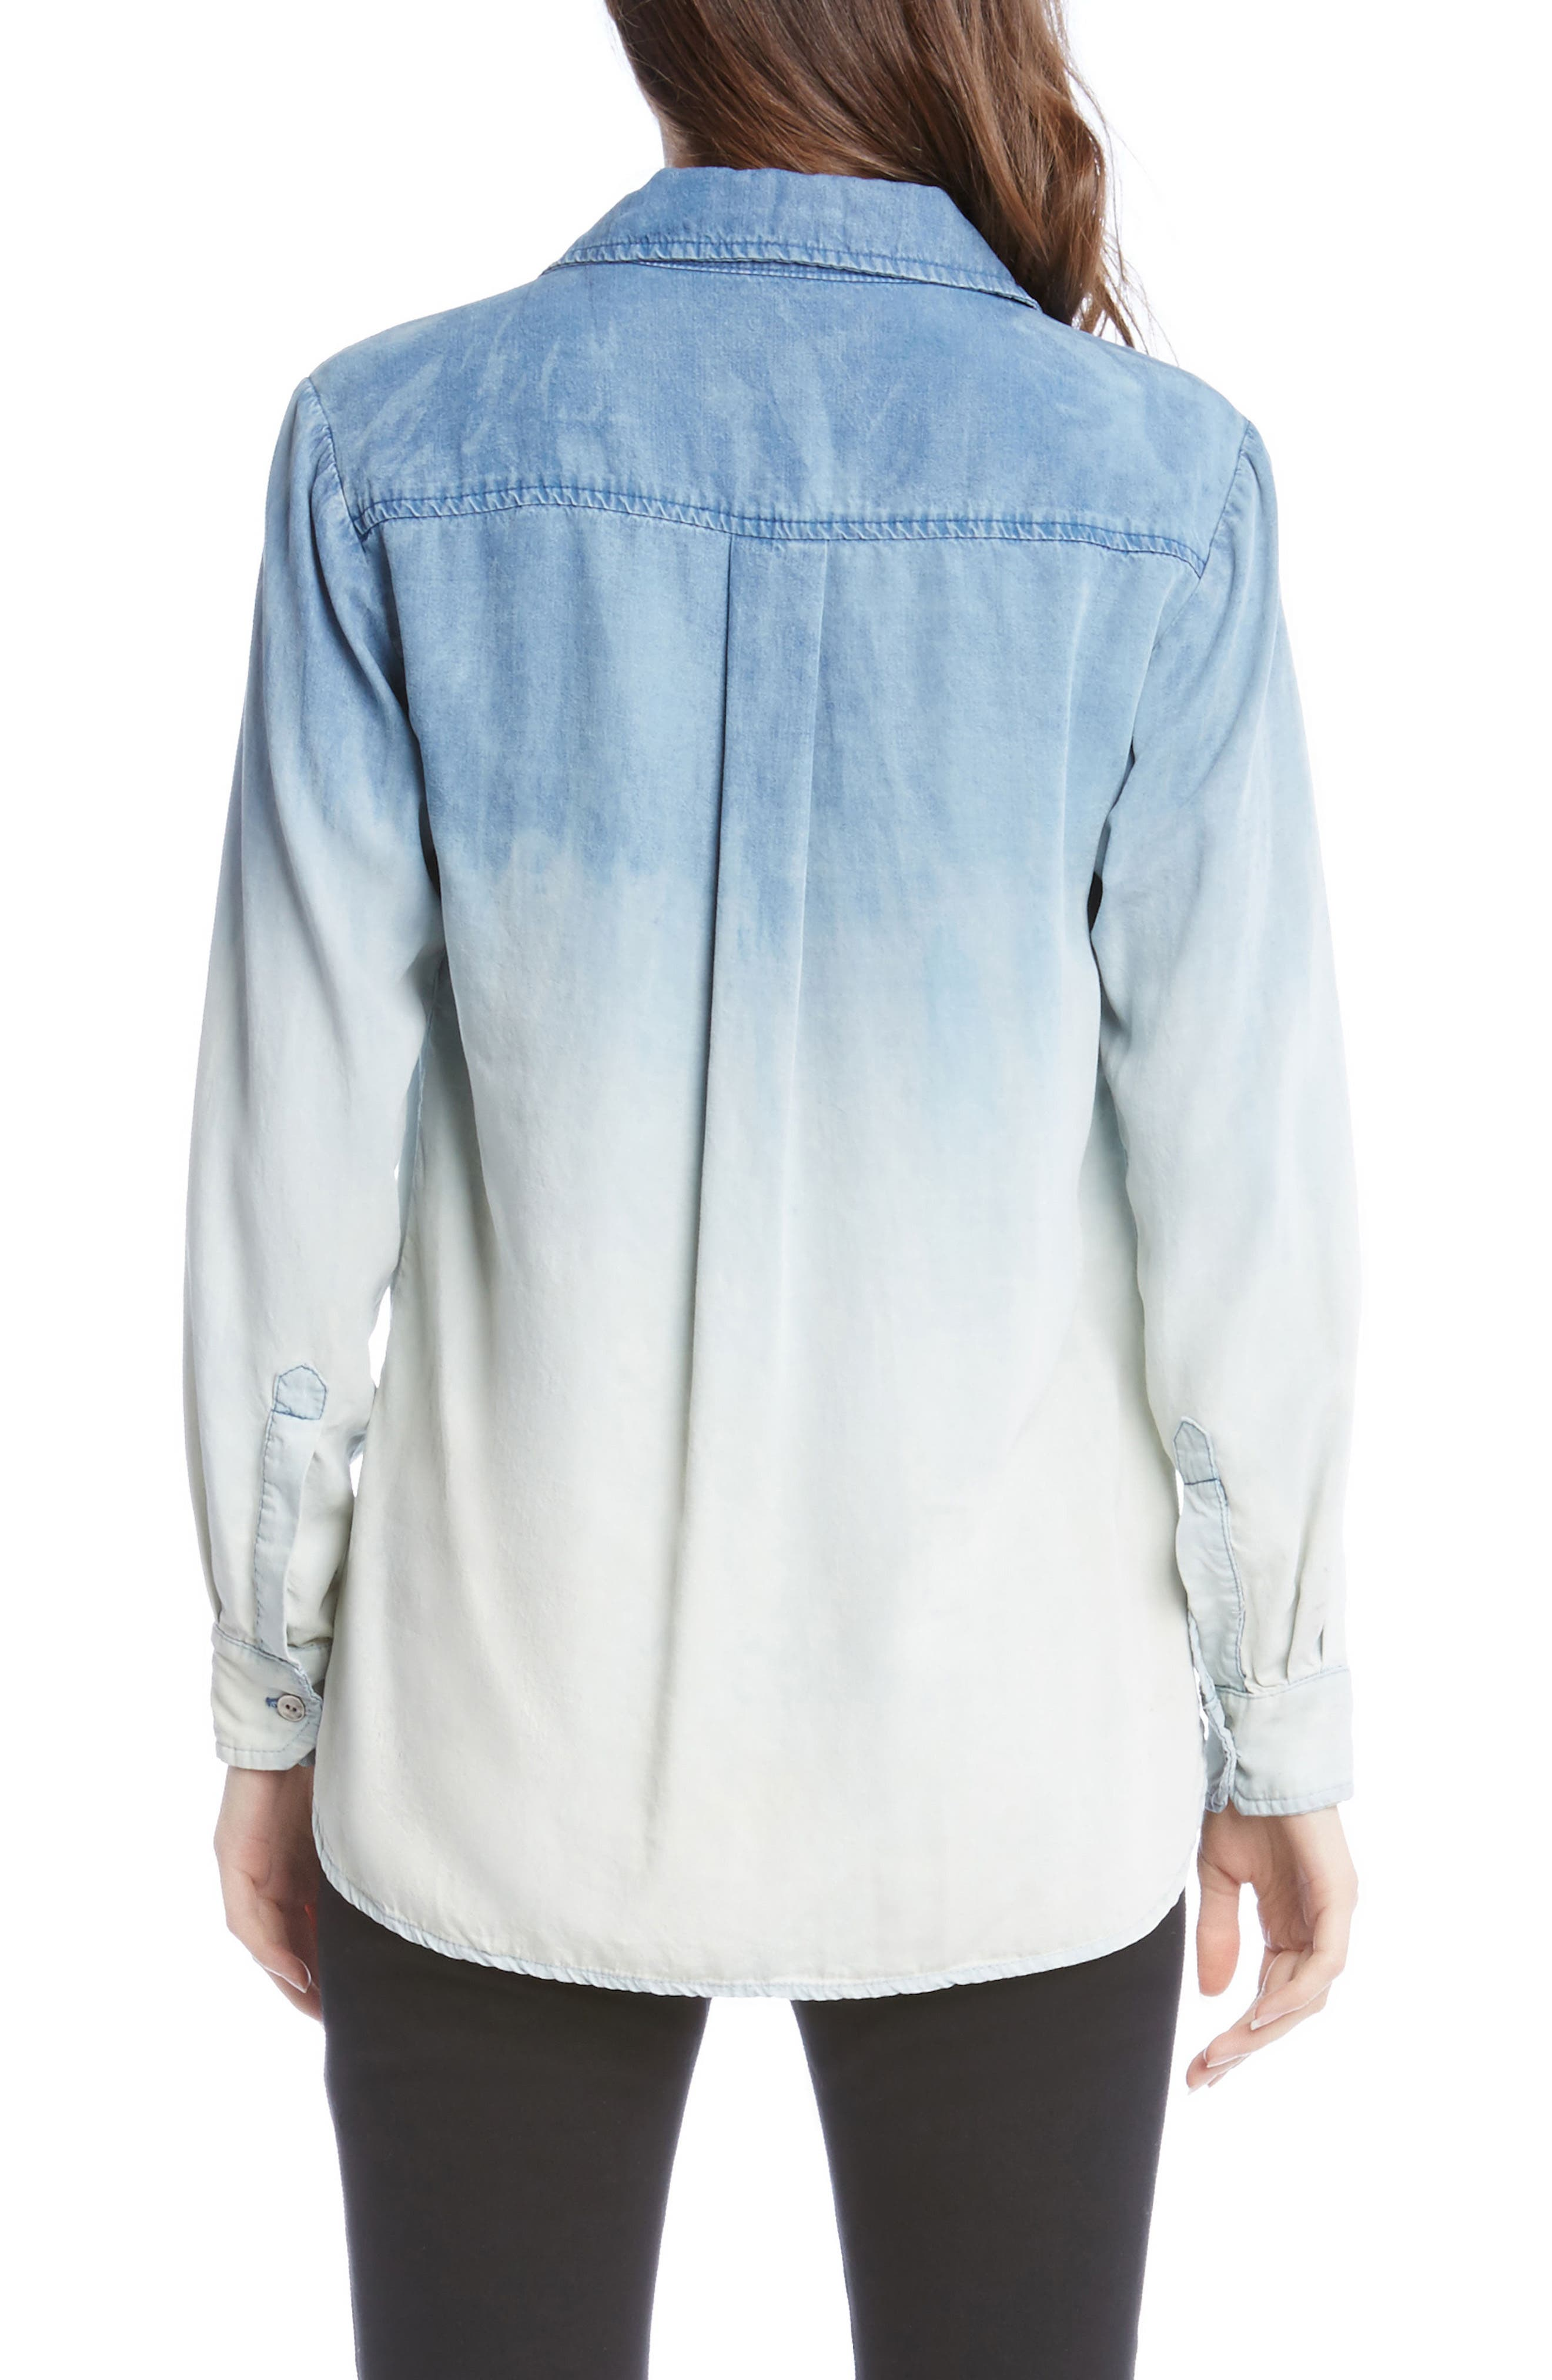 Ombré Chambray Shirt,                             Alternate thumbnail 2, color,                             Chambray